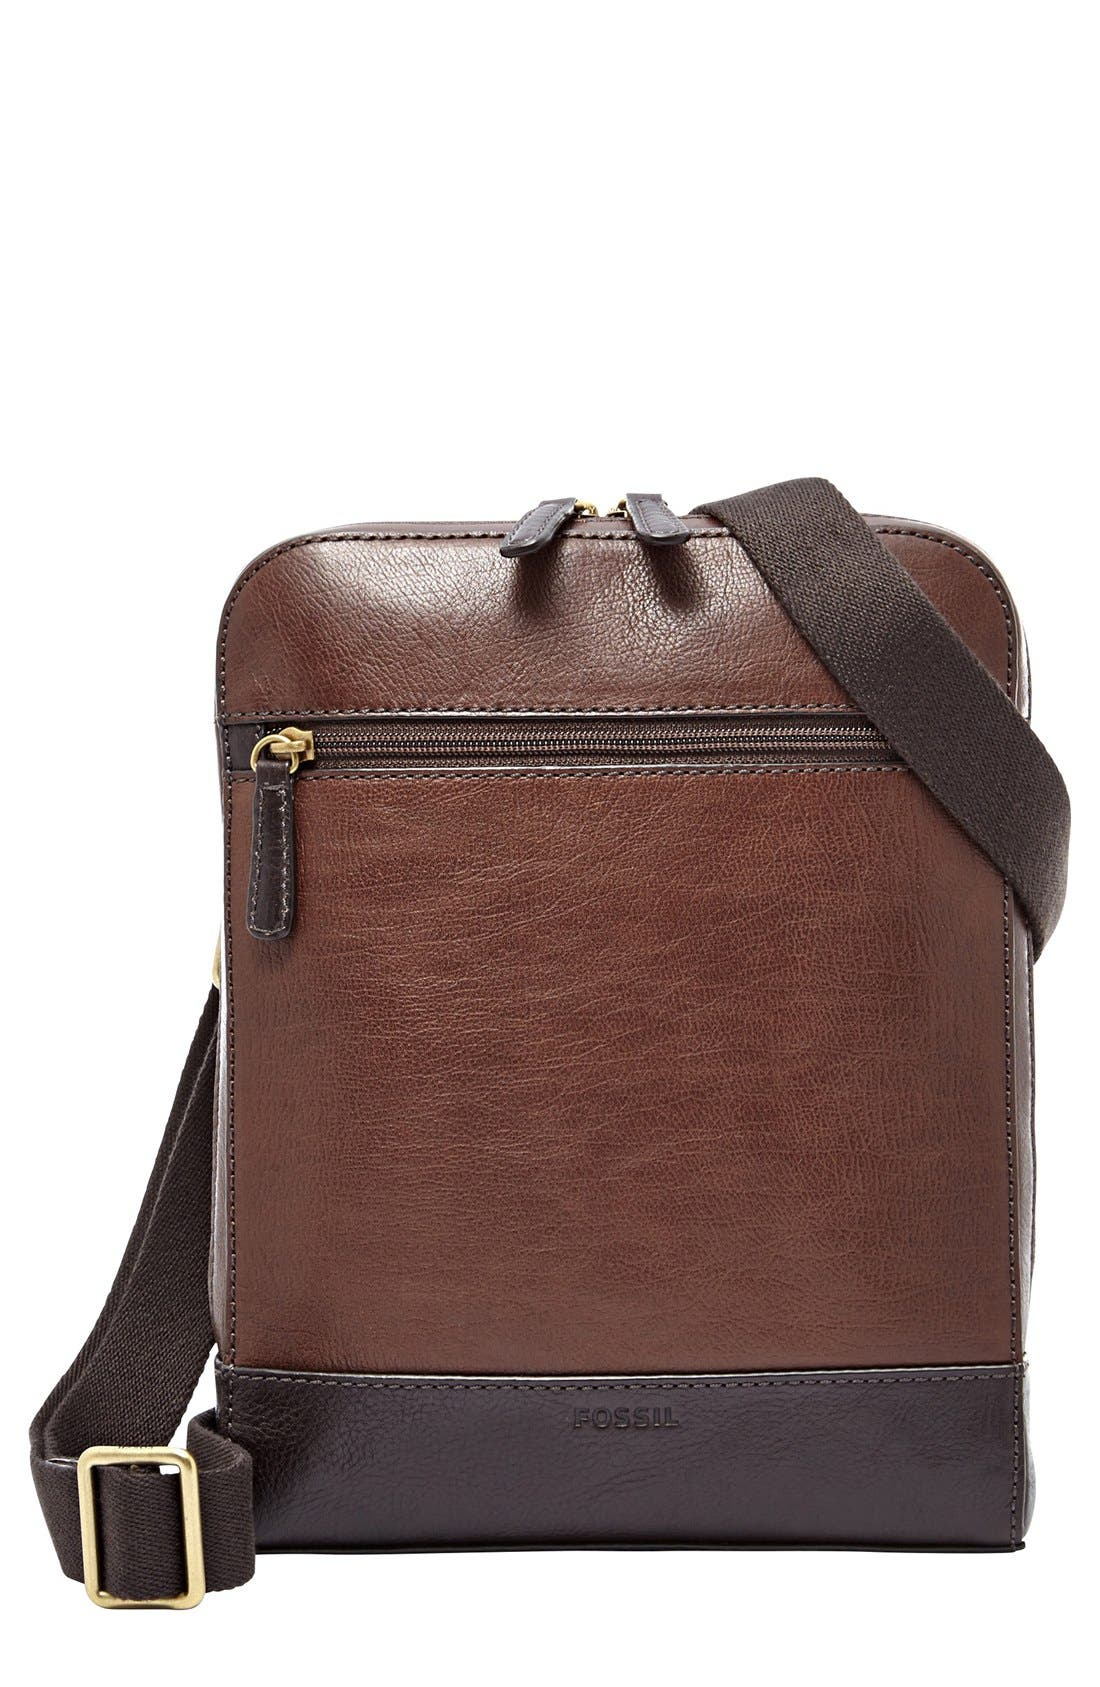 Main Image - Fossil 'Rory' Leather Crossbody Bag